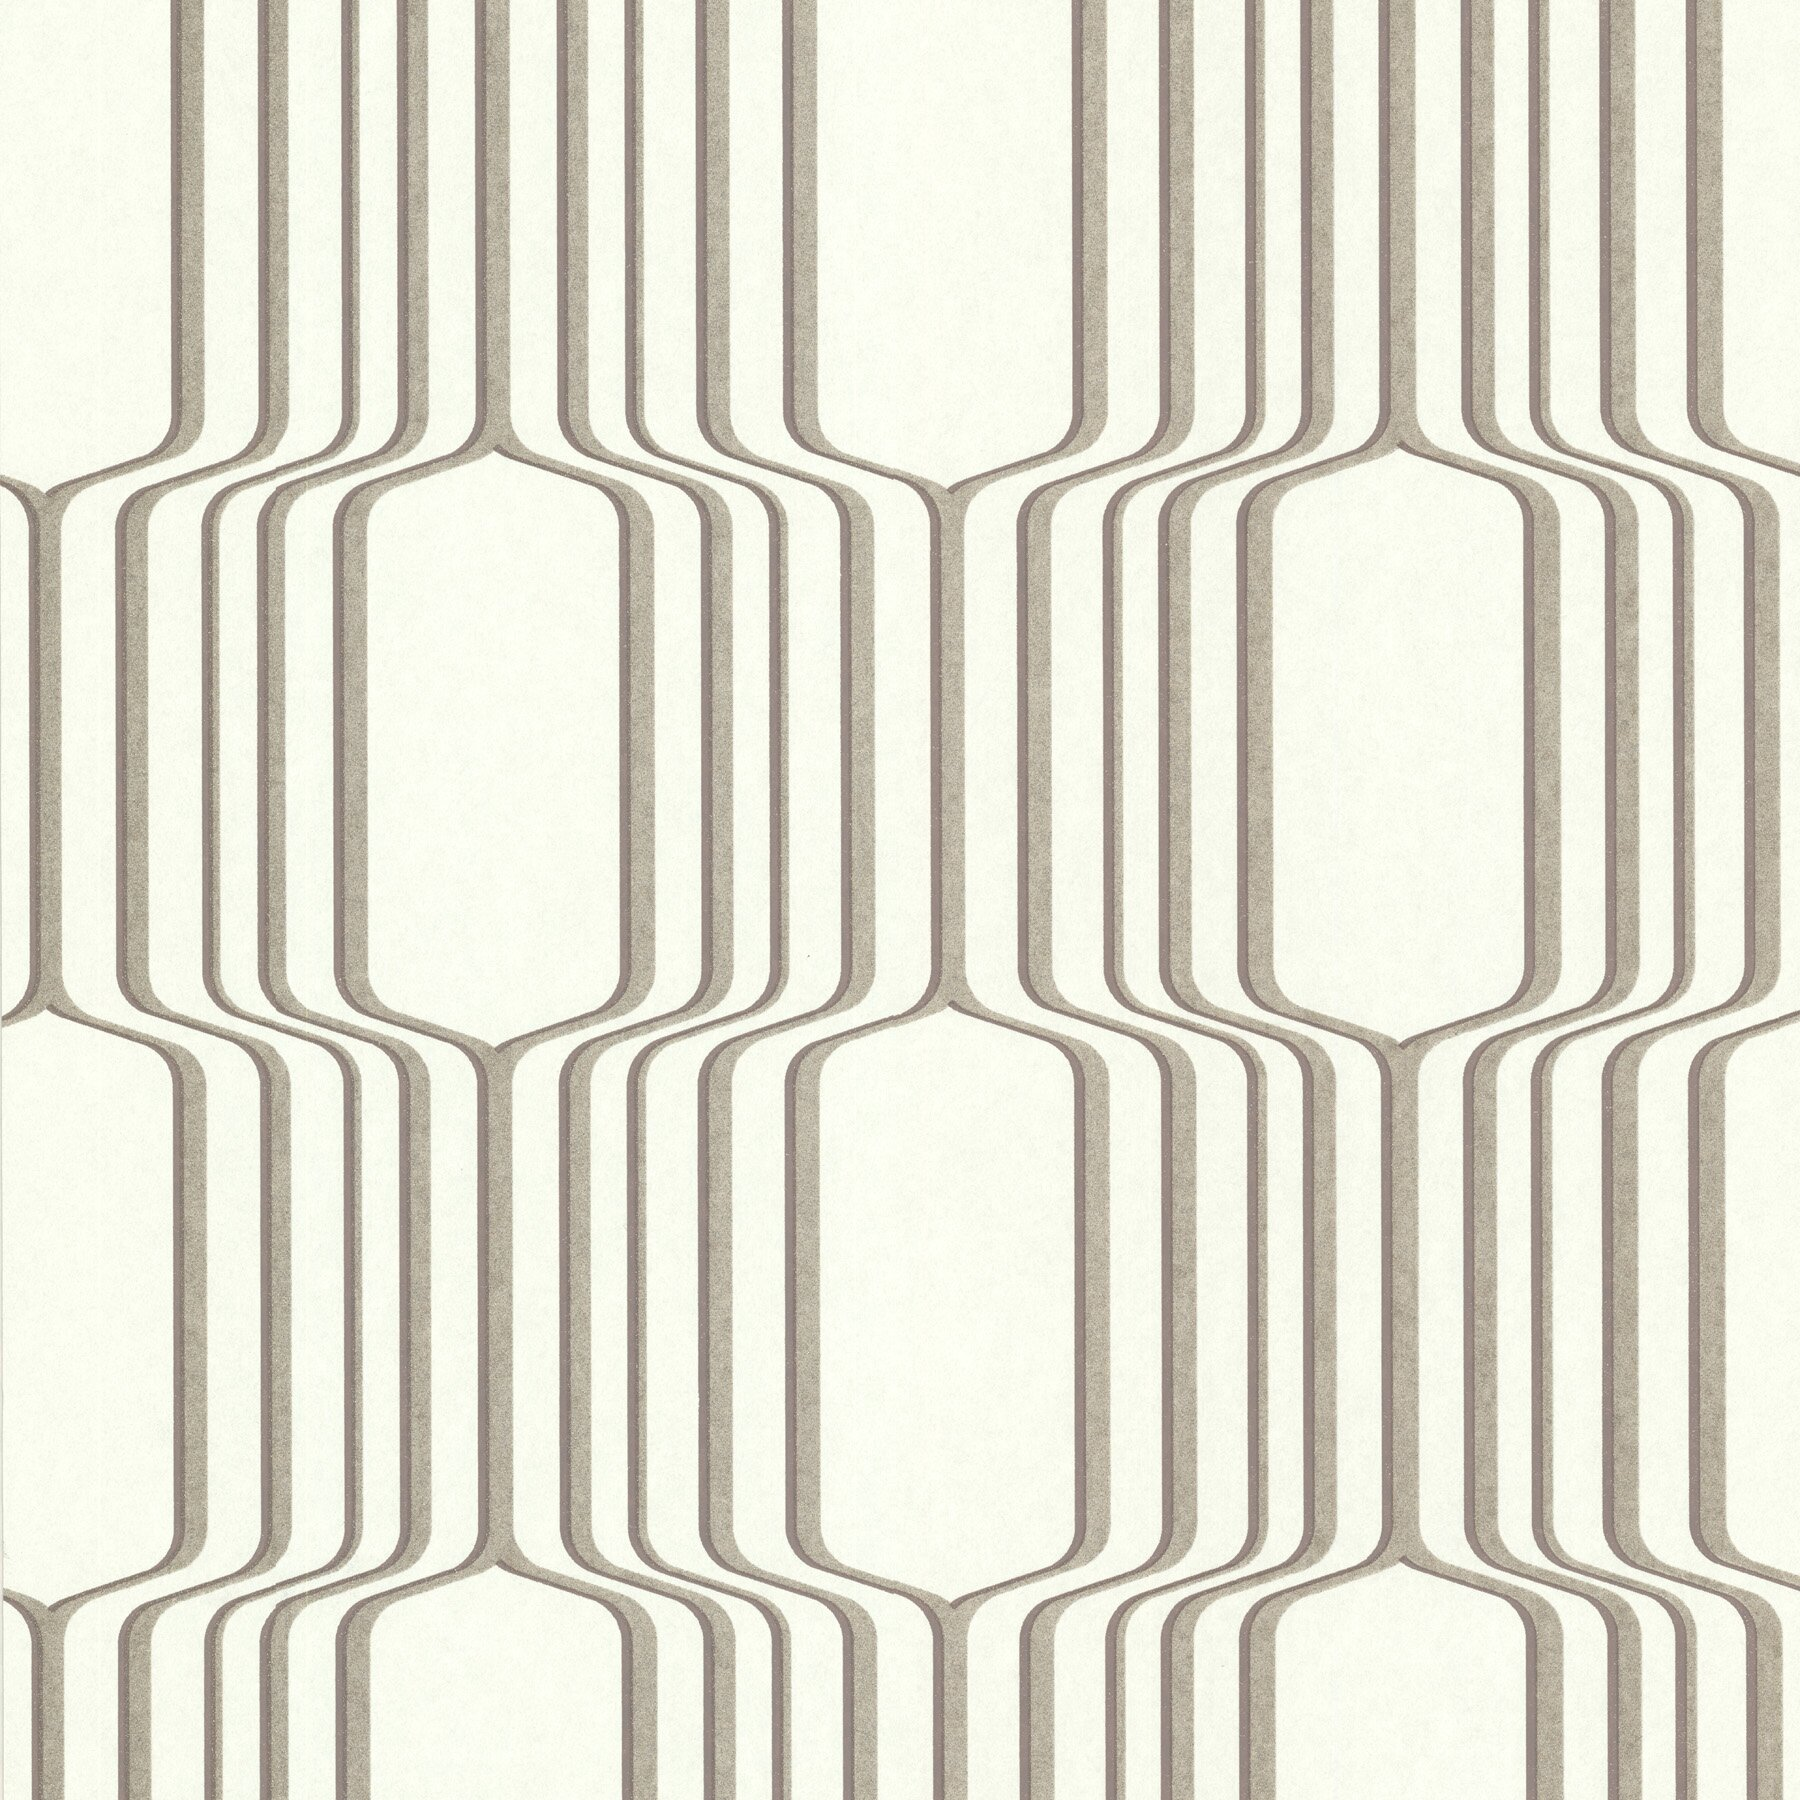 Brewster home fashions geo vina square ogee 33 39 x 20 5 for 3d embossed wallpaper